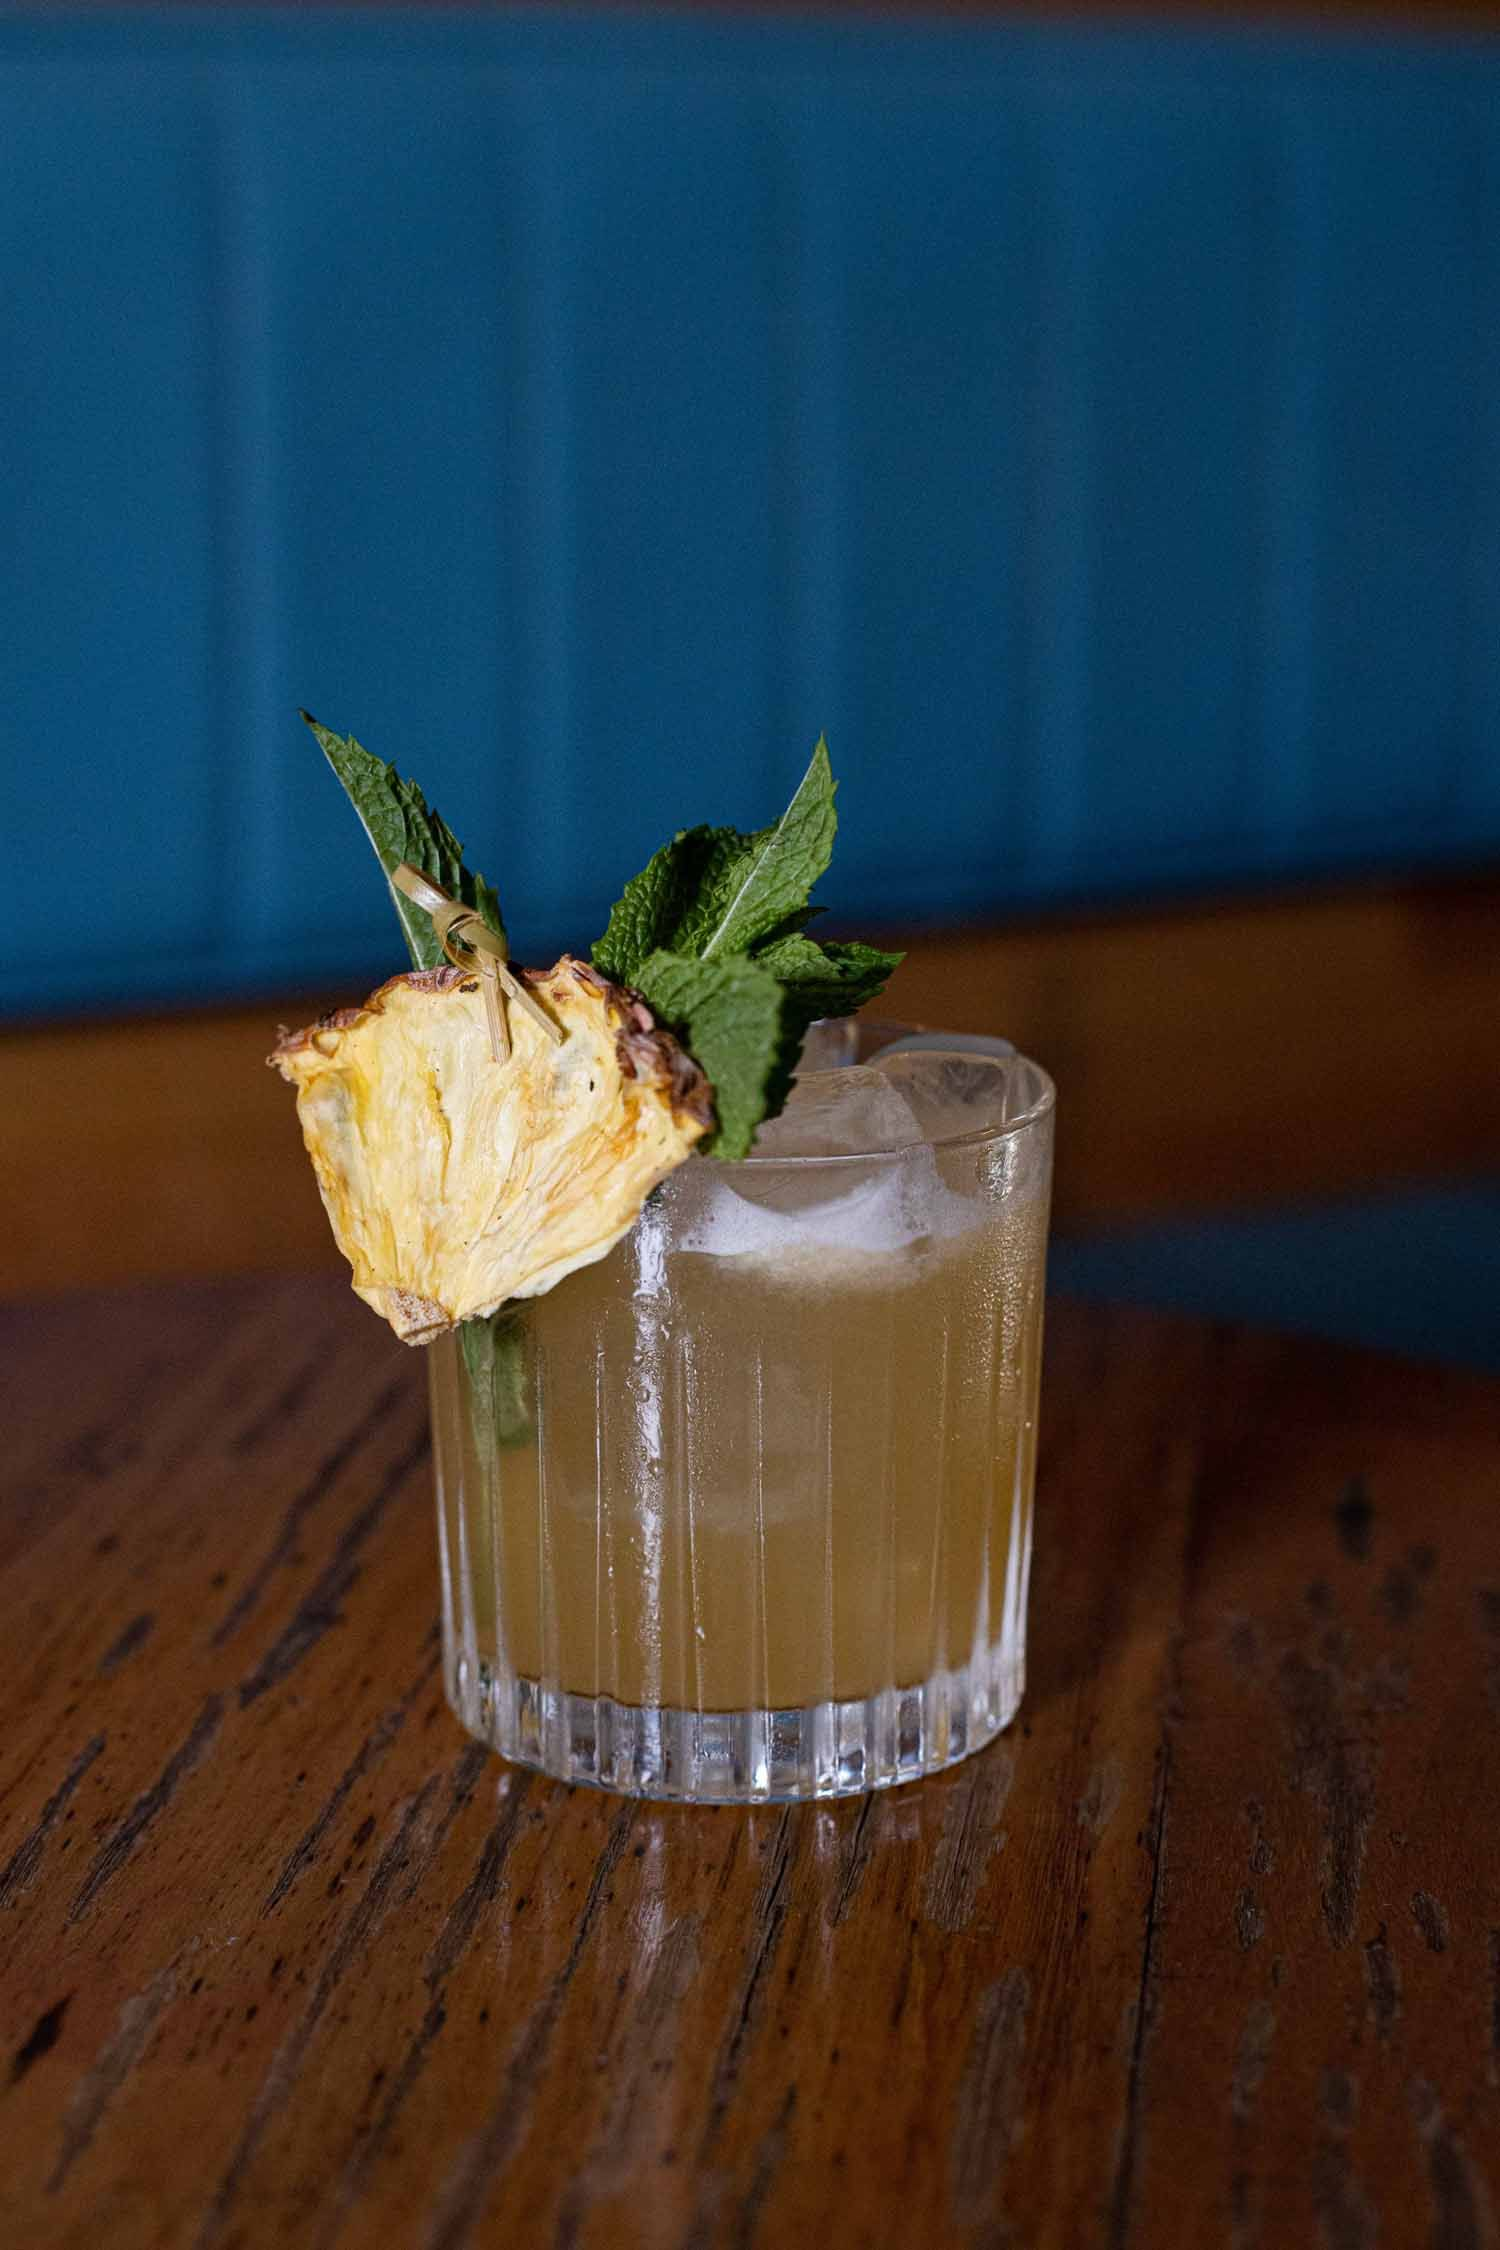 The Kentucky Krawler at Alfred's Bar in Adelaide.